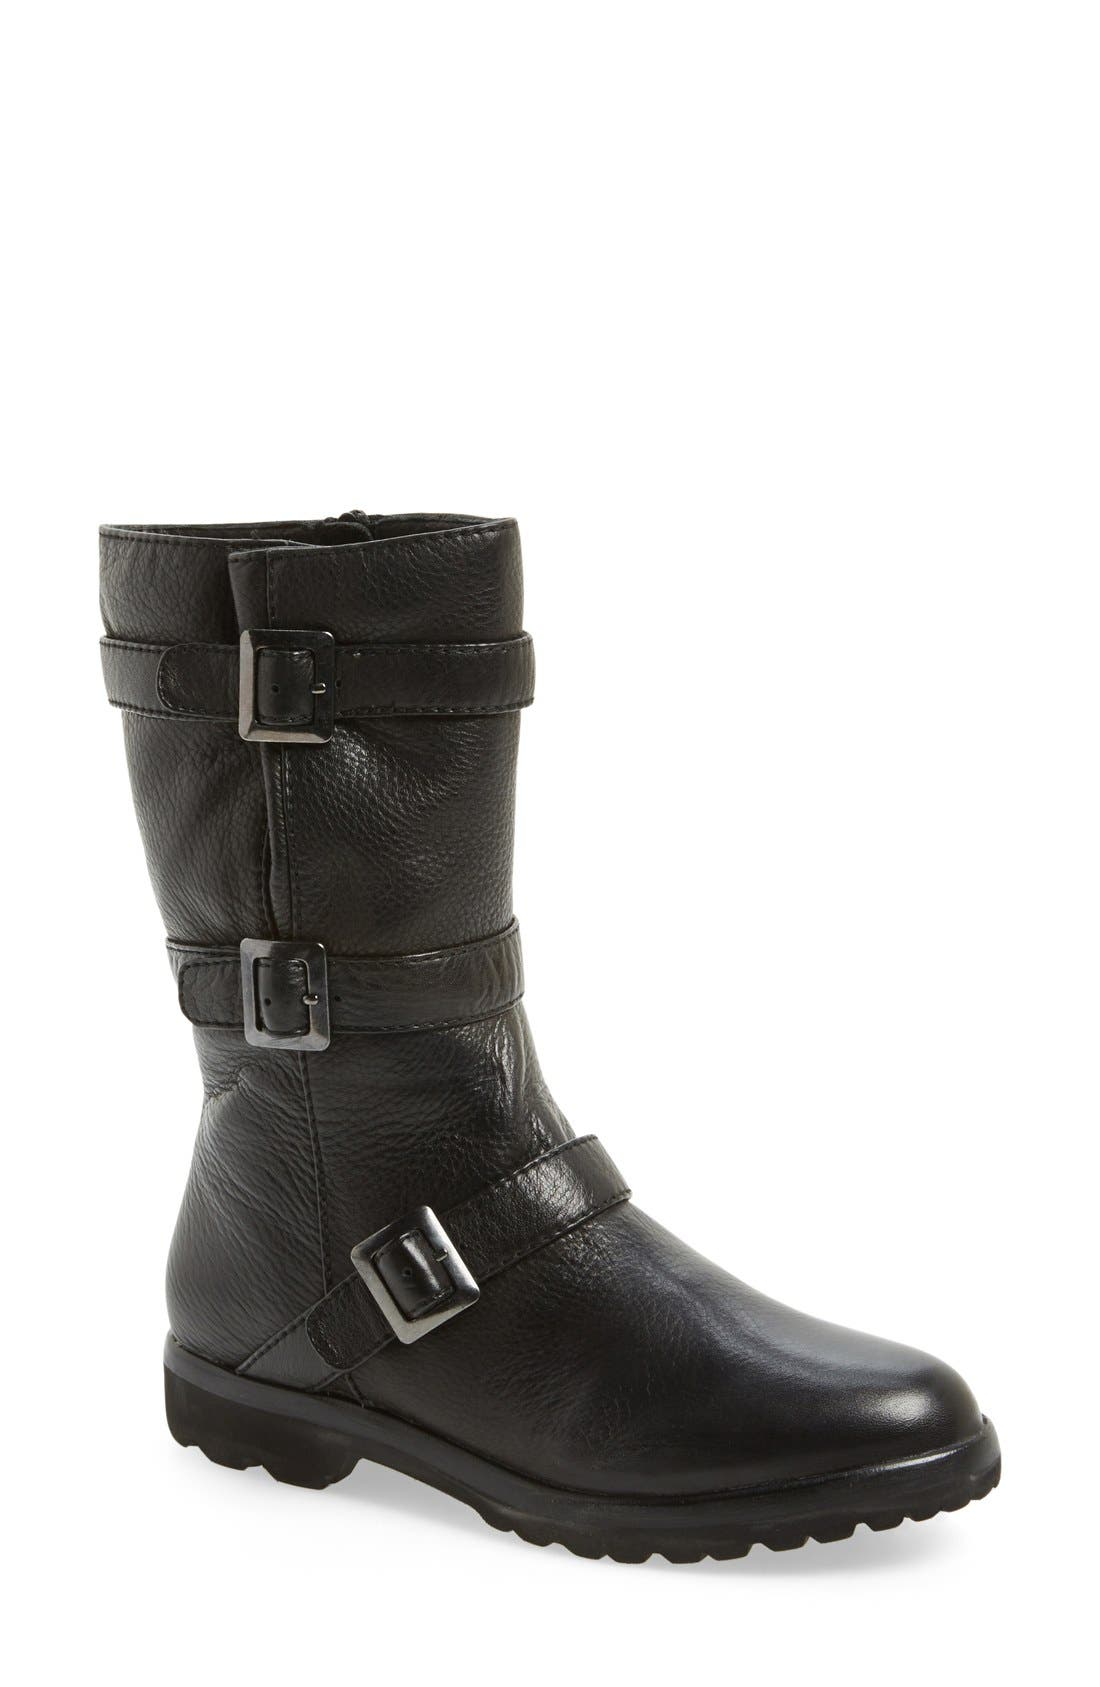 Alternate Image 1 Selected - L'Amour Des Pieds 'Racey' Belted Mid Boot (Women)